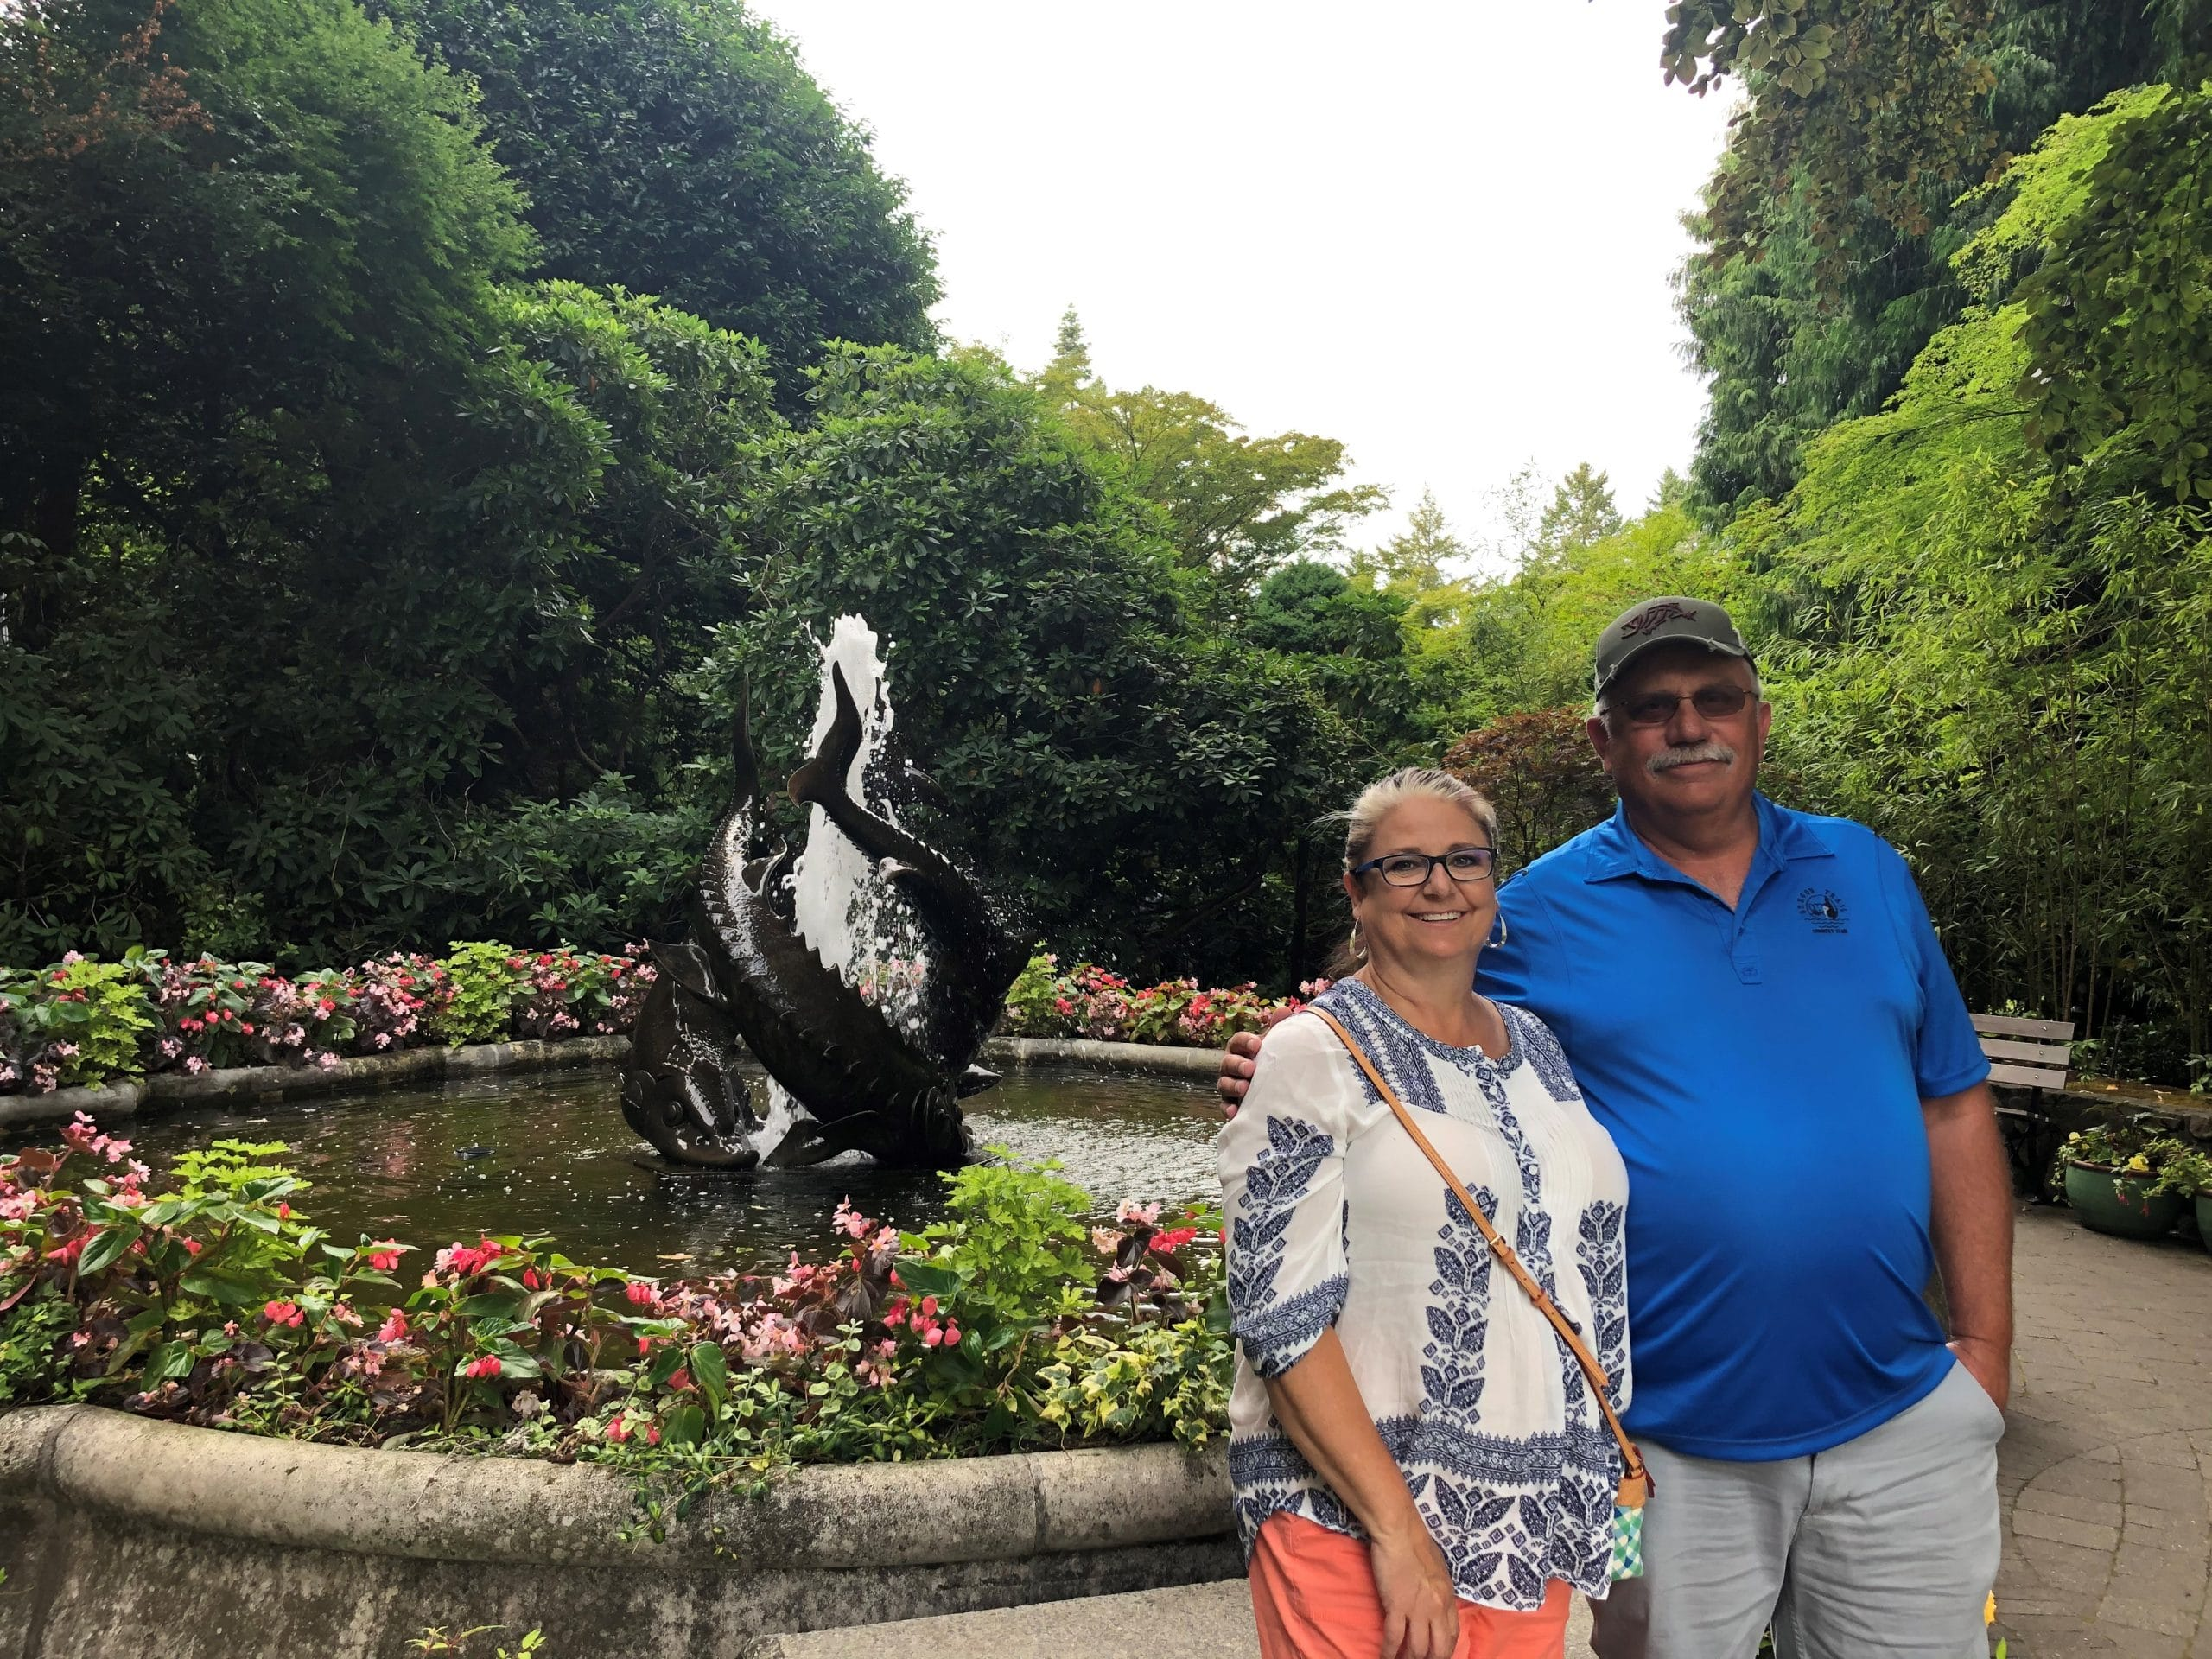 NIcky and her husband with a fountain